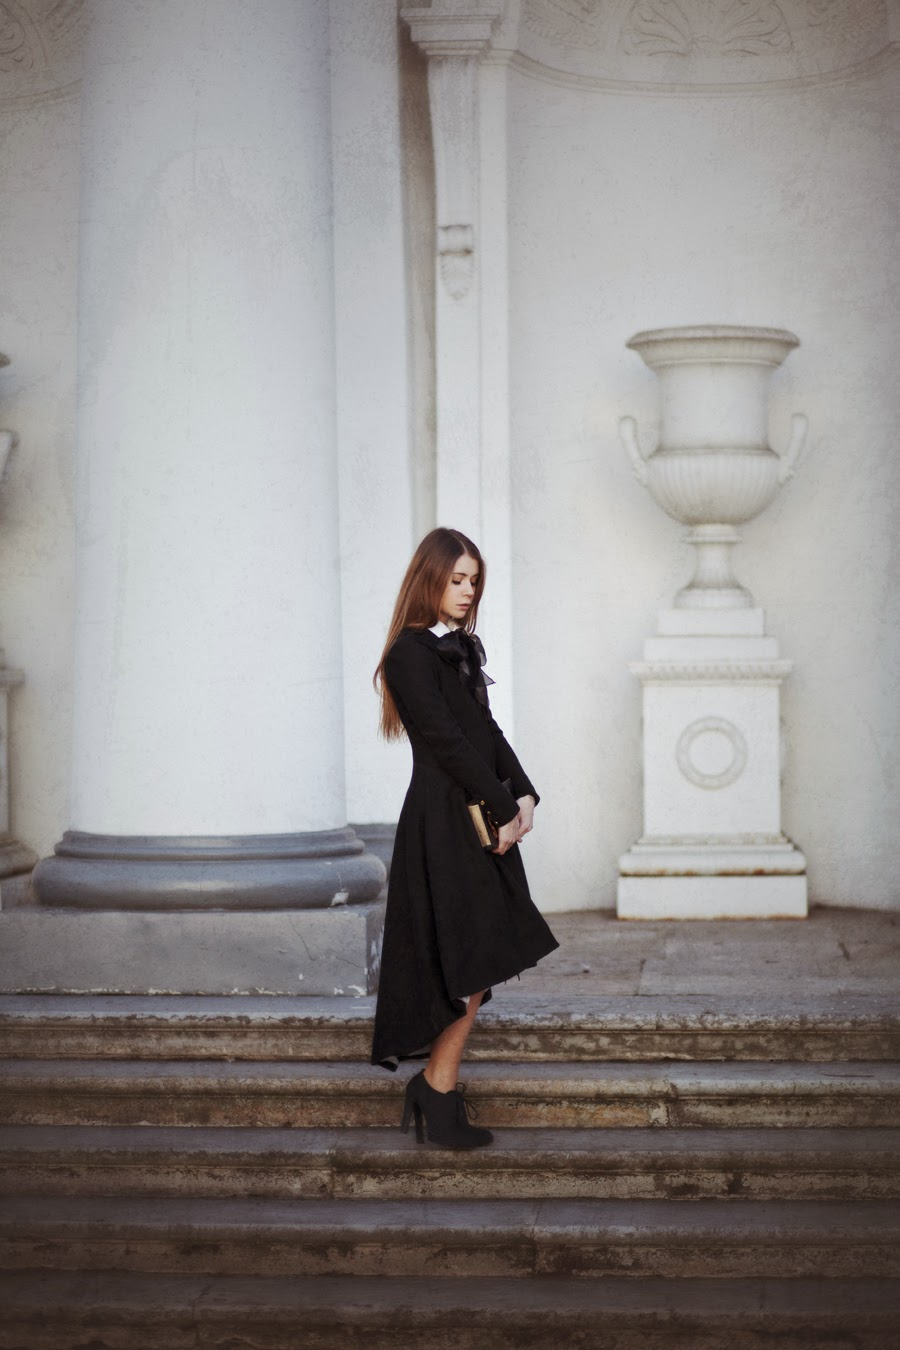 Anna Vershinina is wearing a black coat from Zaful, matching skirt from Sheinside and the white blouse is from OASAP